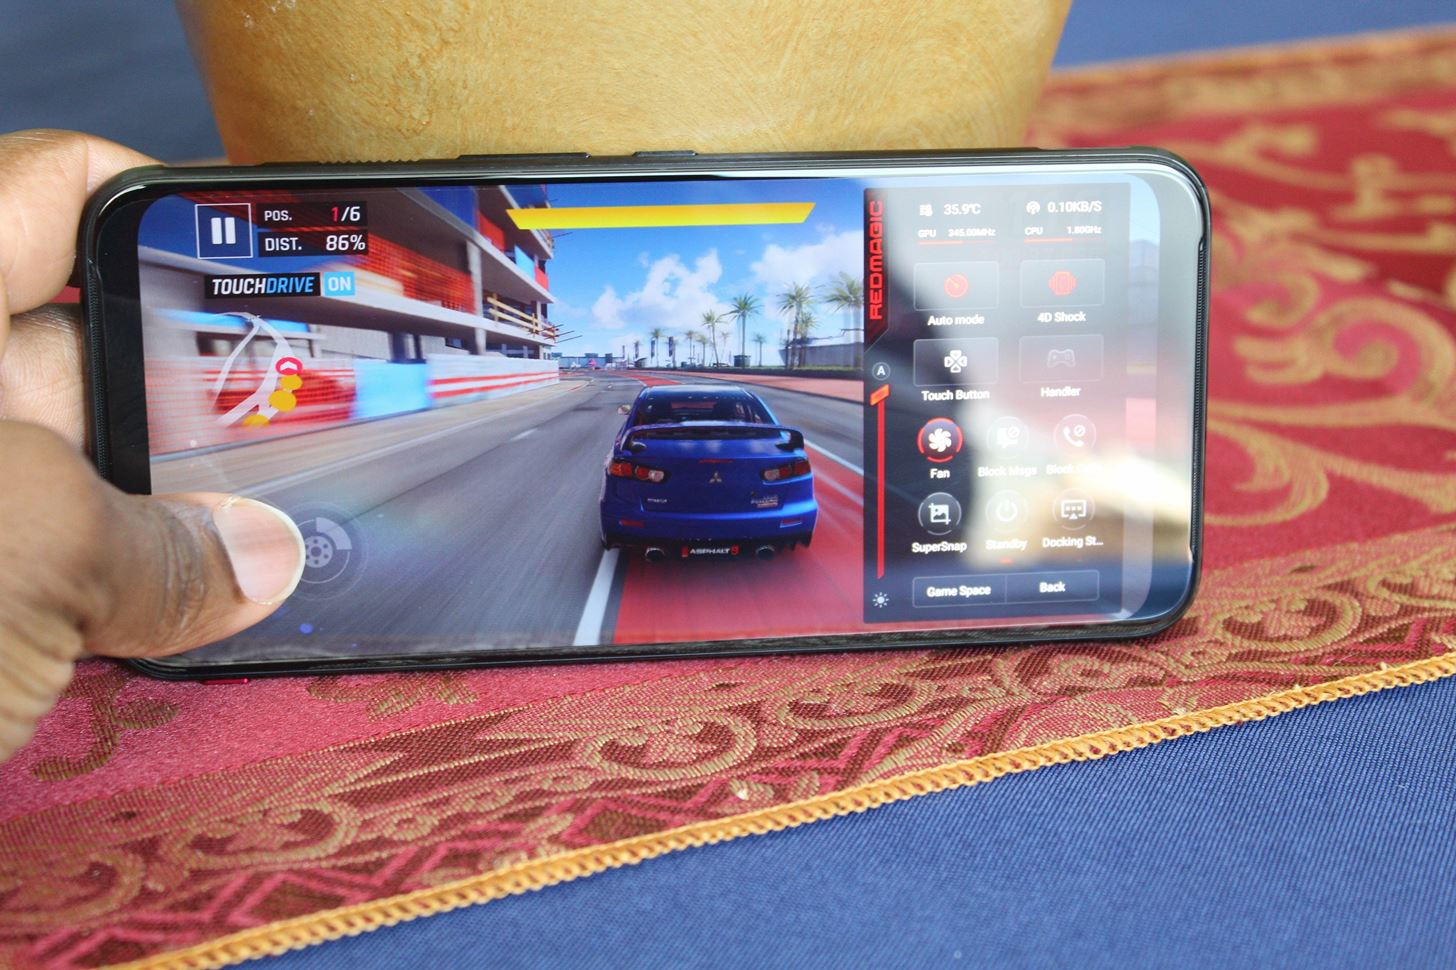 The Best Gaming Phone Out There Is Also the Cheapest & You've Probably Never Heard of It